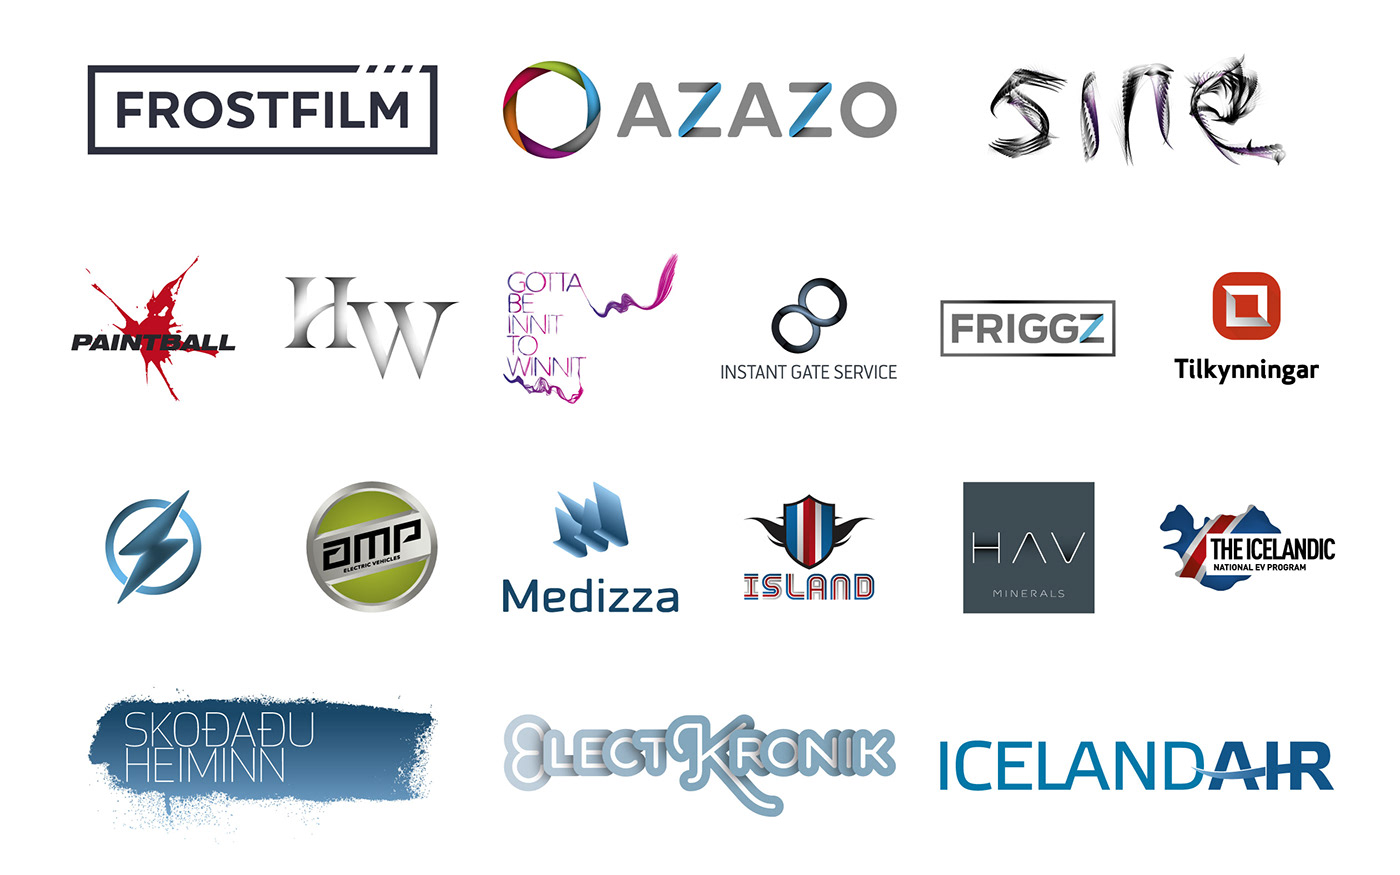 logos marks typography   branding  ID sigvicious Siggeir iceland